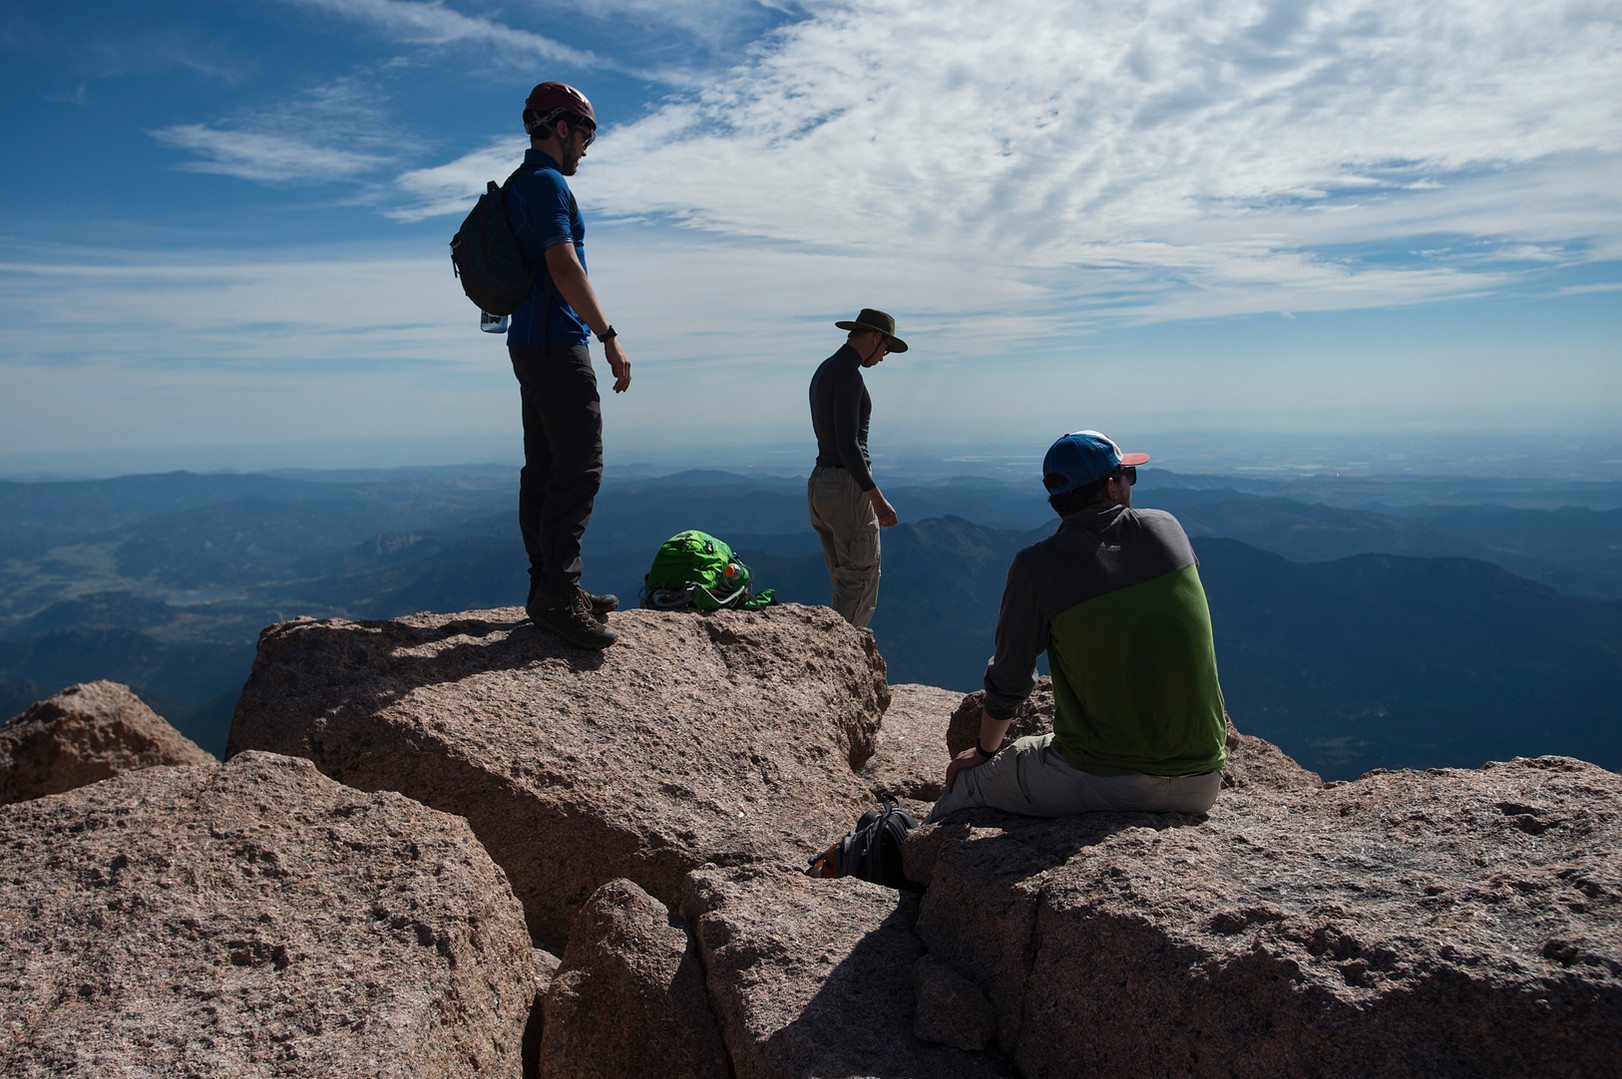 Climbers take in the view from the summit of Longs Peak in Rocky Mountain National Park on Friday, July 19, 2017.